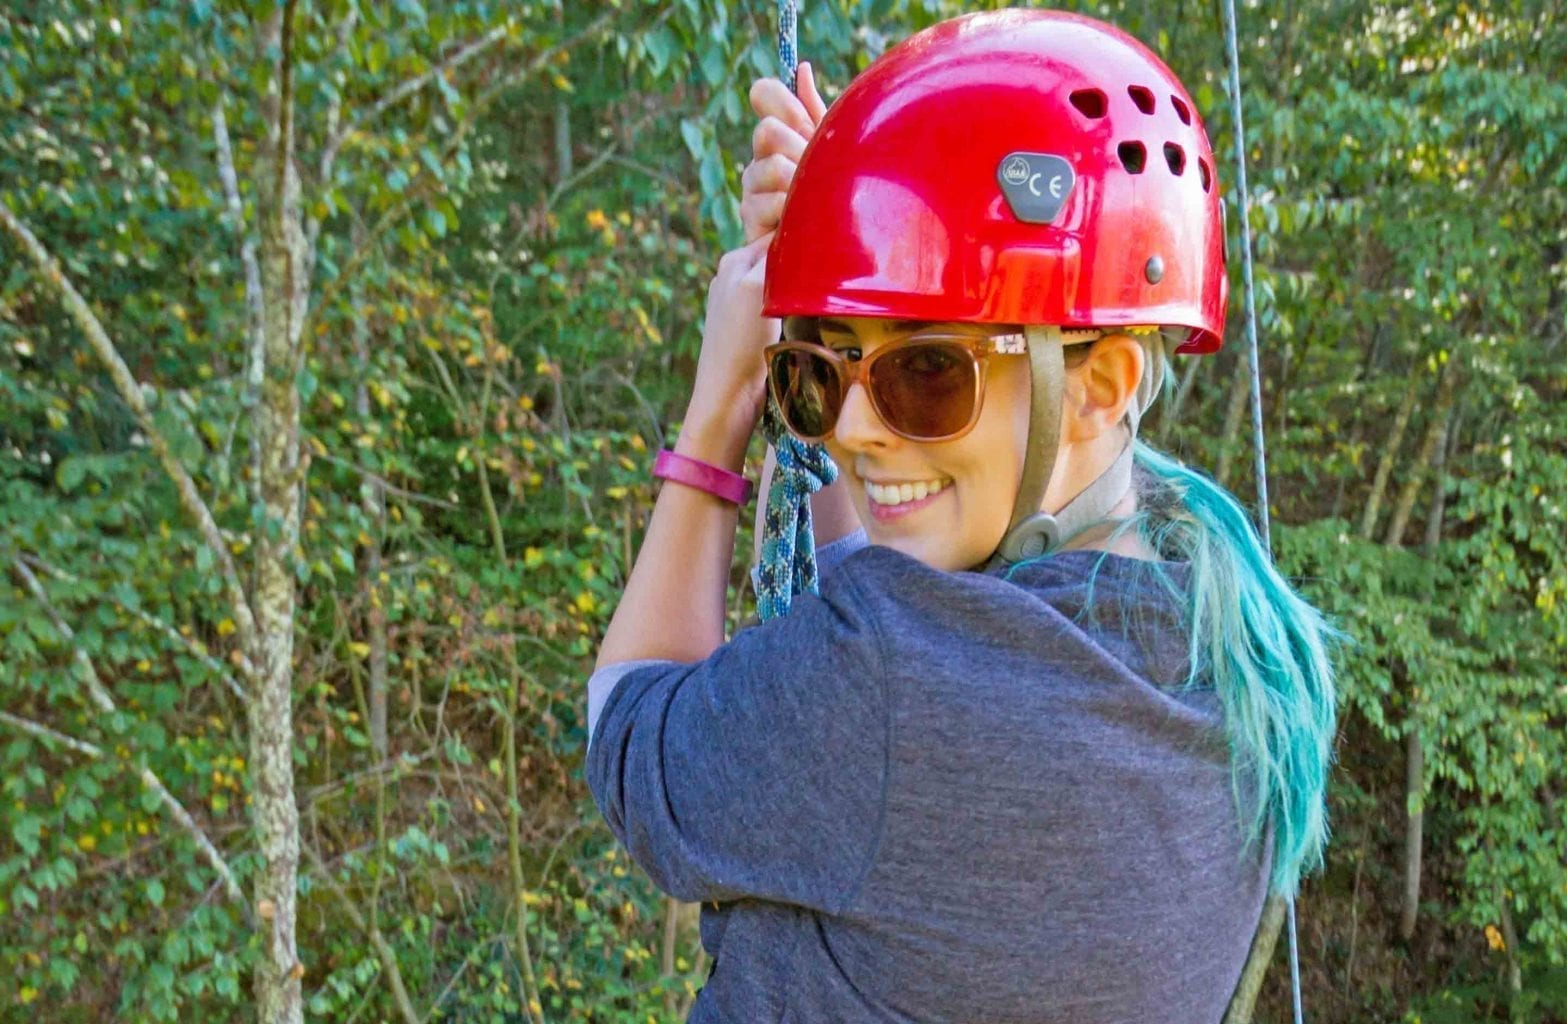 A woman swings from the ropes and smiles on the Team Challenge Course alpine tower at ACE Adventure Resort in the New River Gorge, West Virginia.